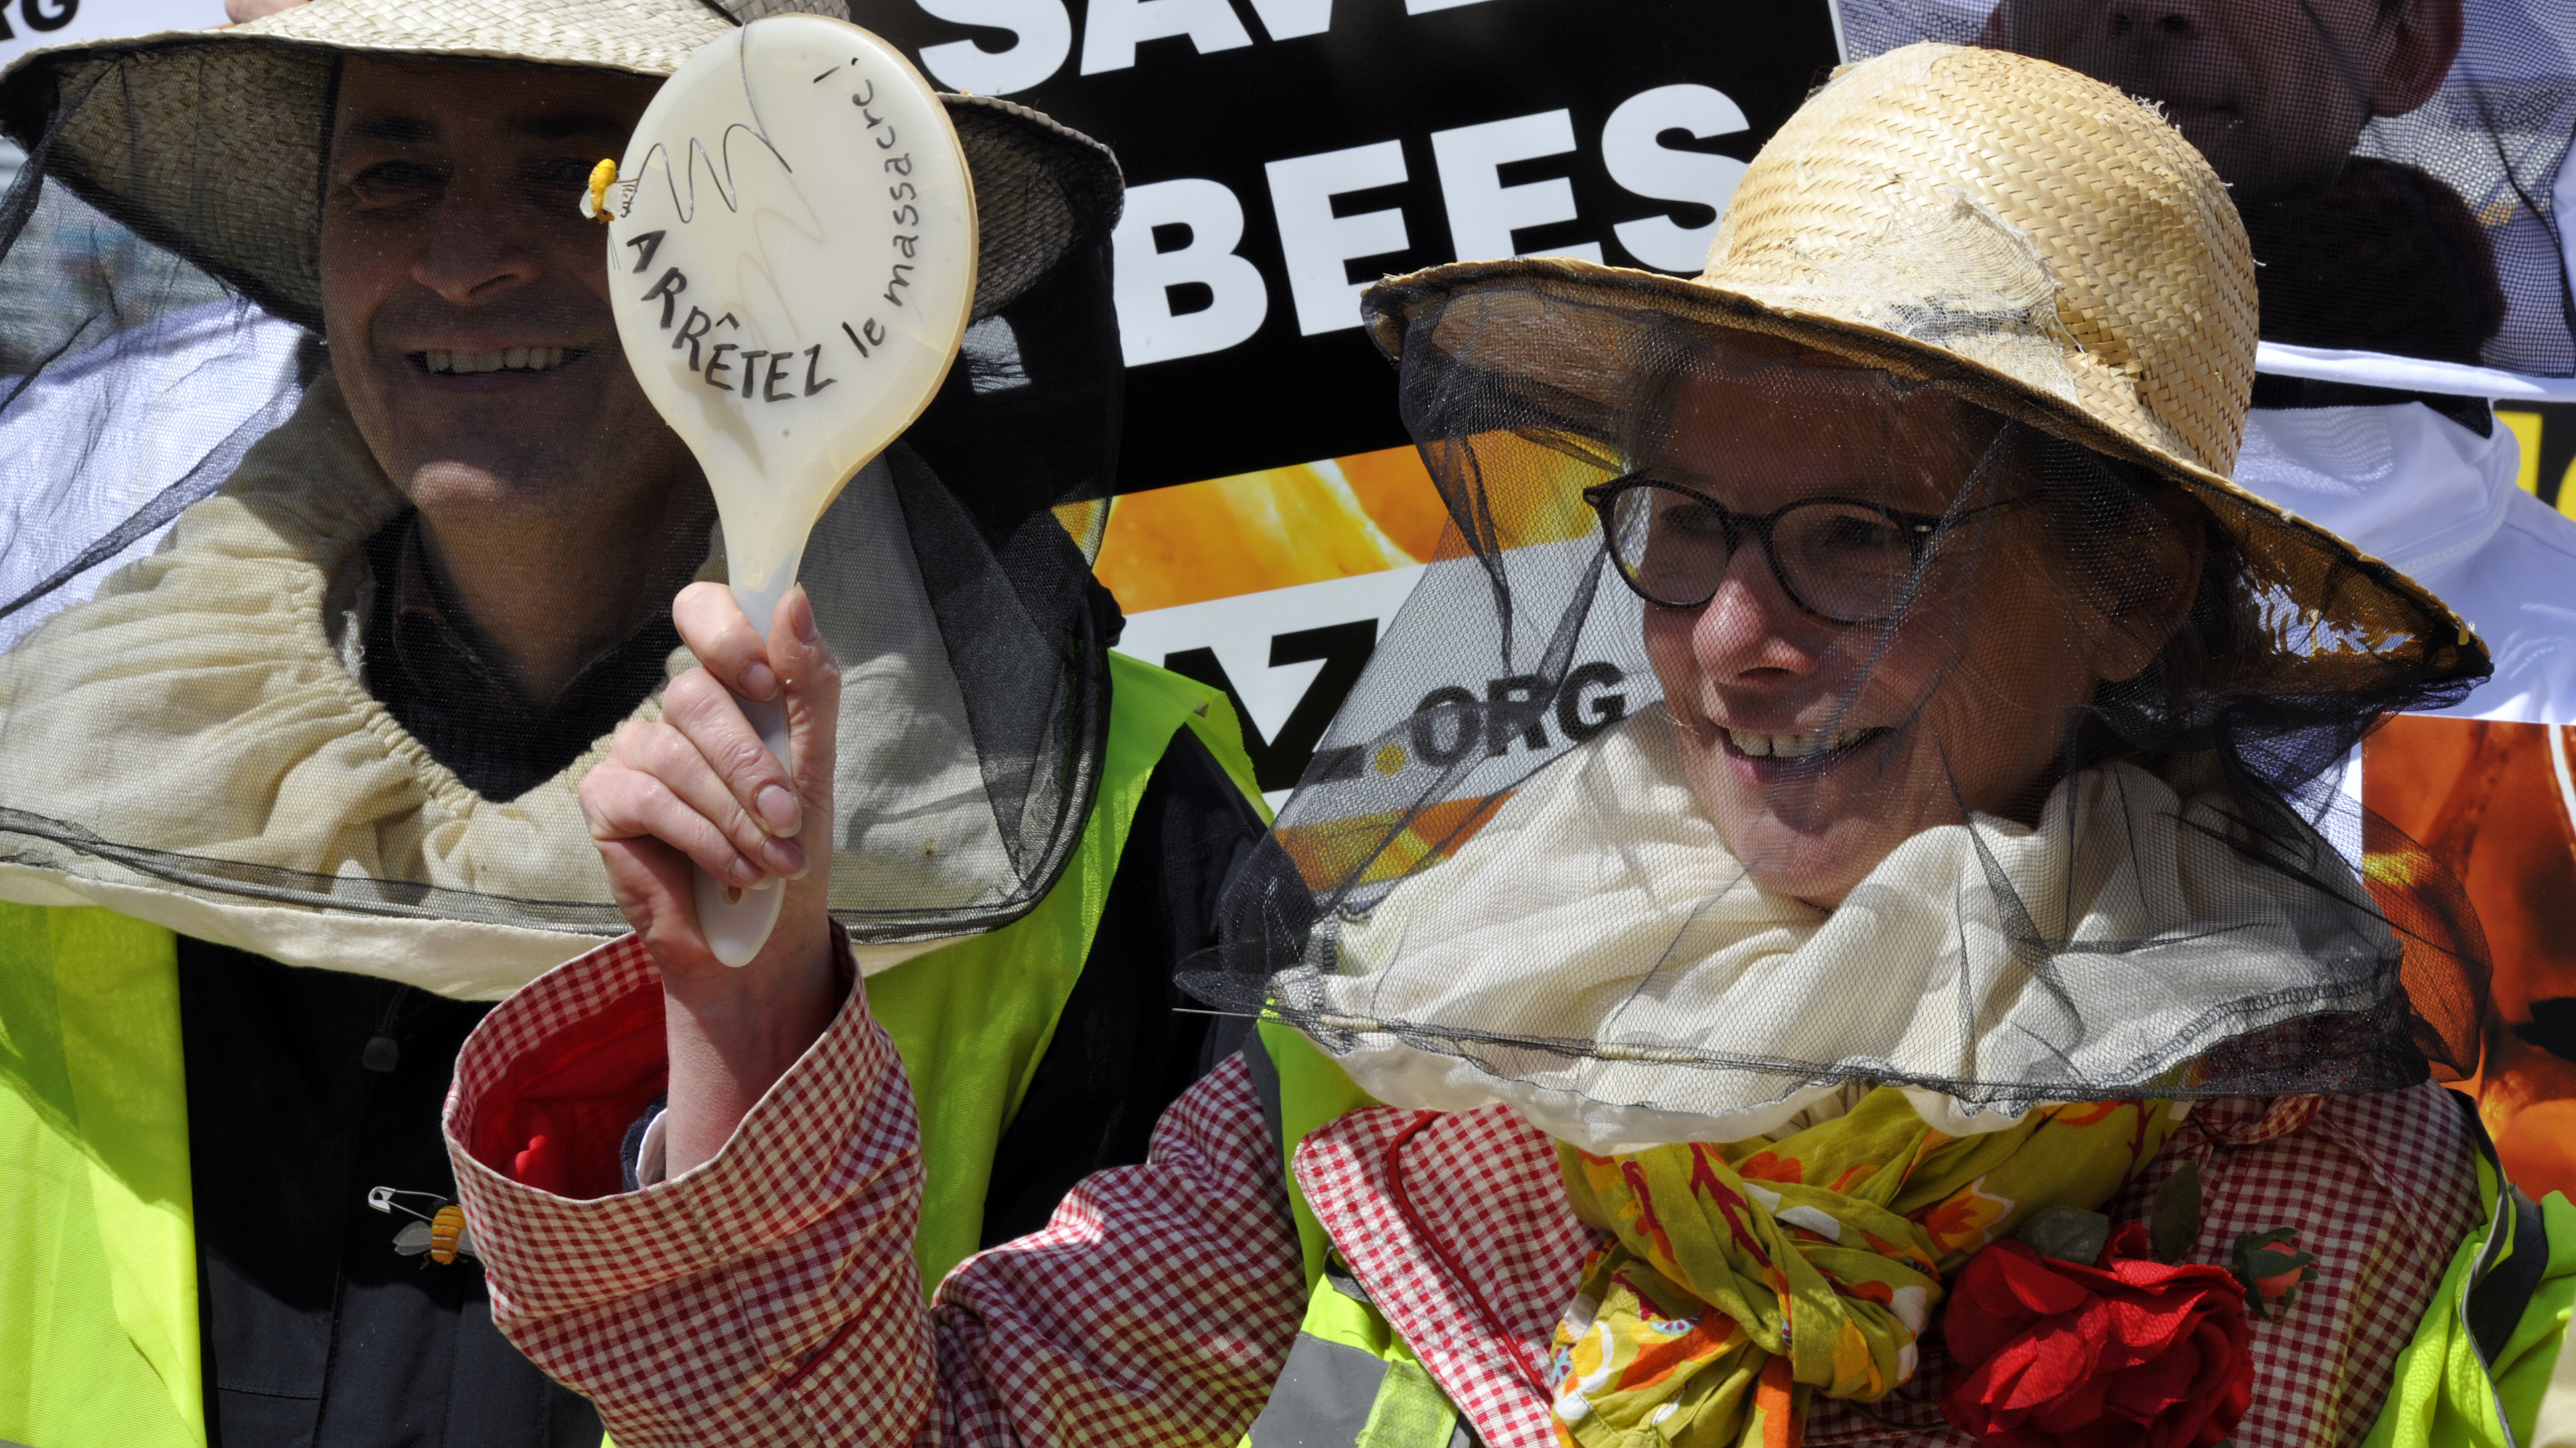 Europe Bans Pesticides In Move To Protect Honey Bees